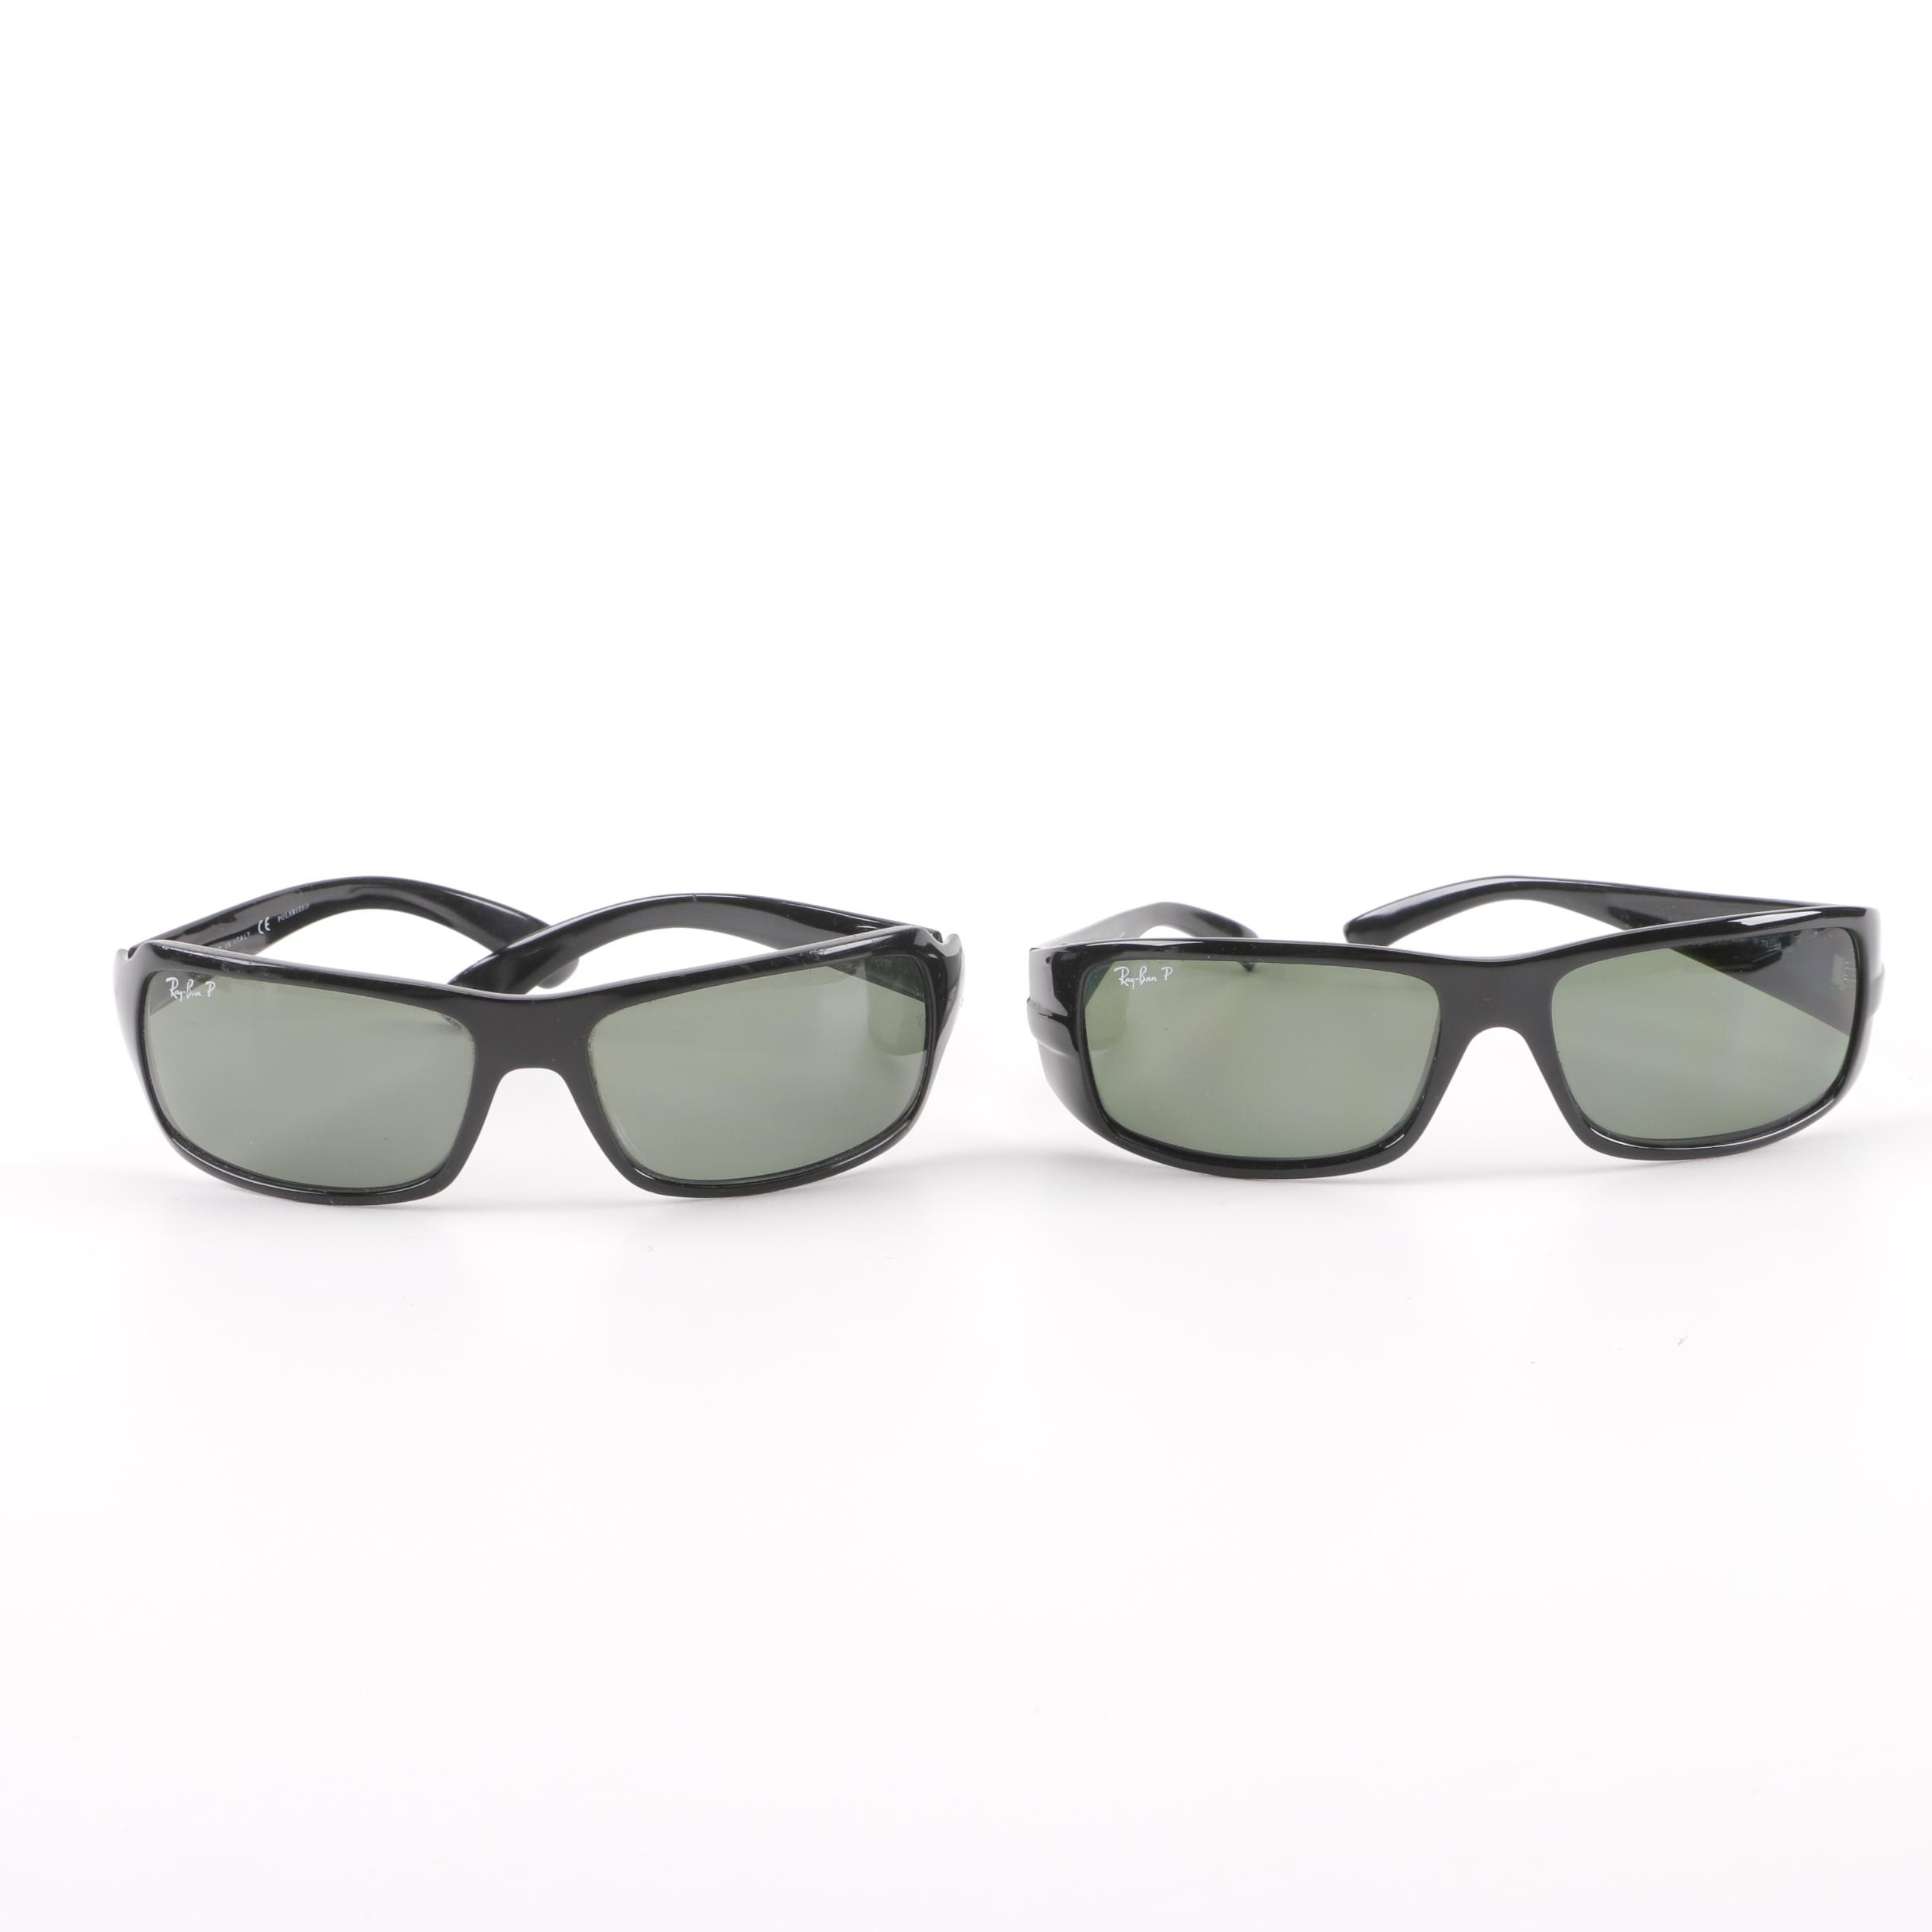 Ray-Ban RB 4057 and RB 4075 Polarized Sunglasses, Made in Italy